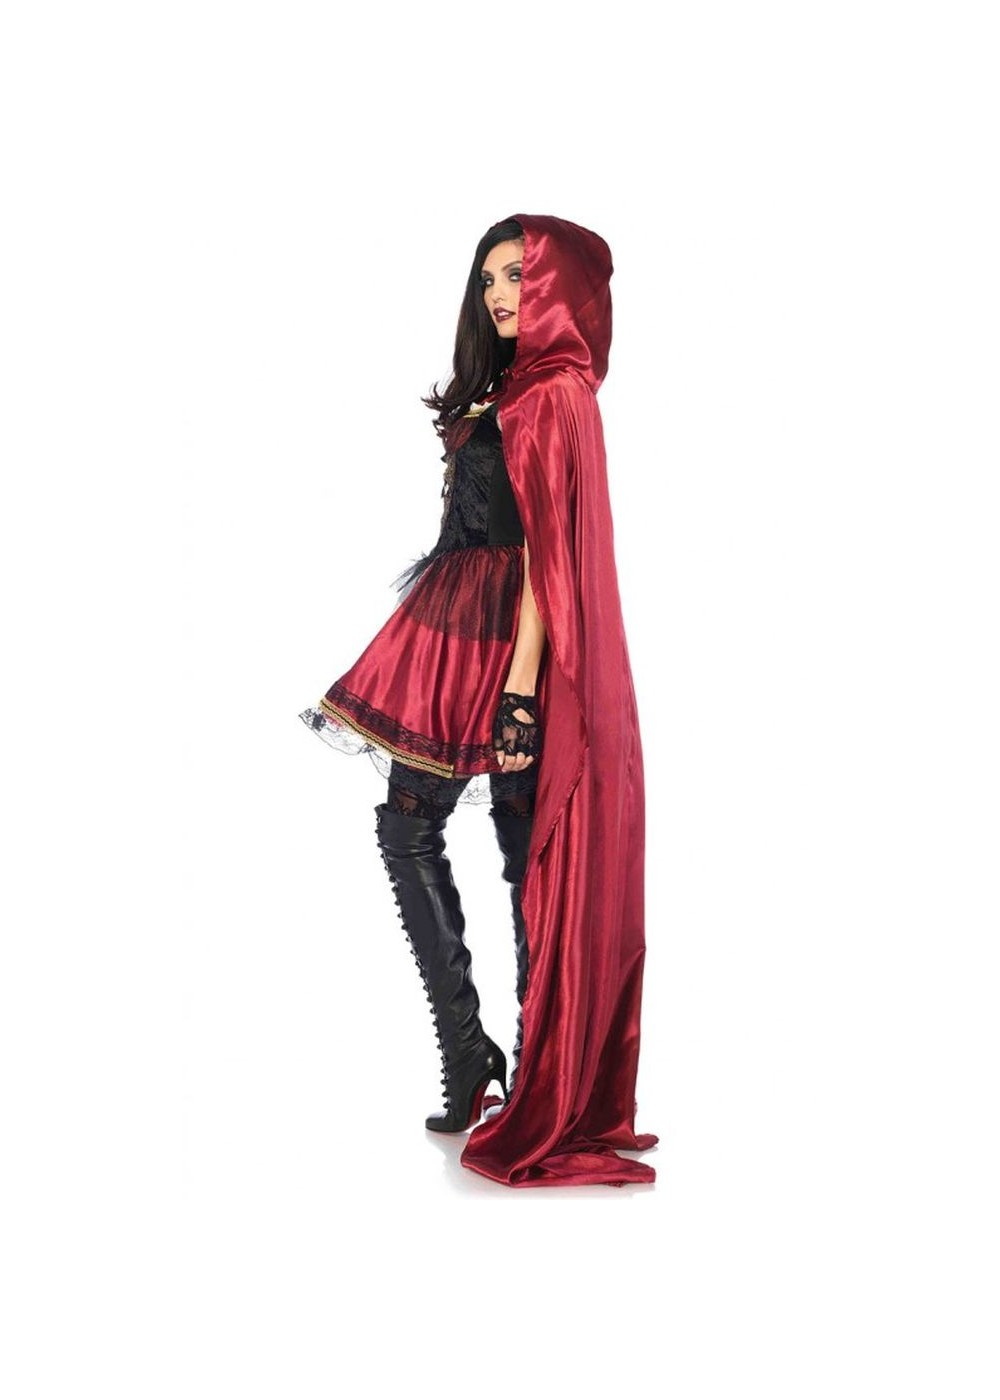 Captivating Miss Red Riding Hood Women Costume - Sexy Costumes-9501